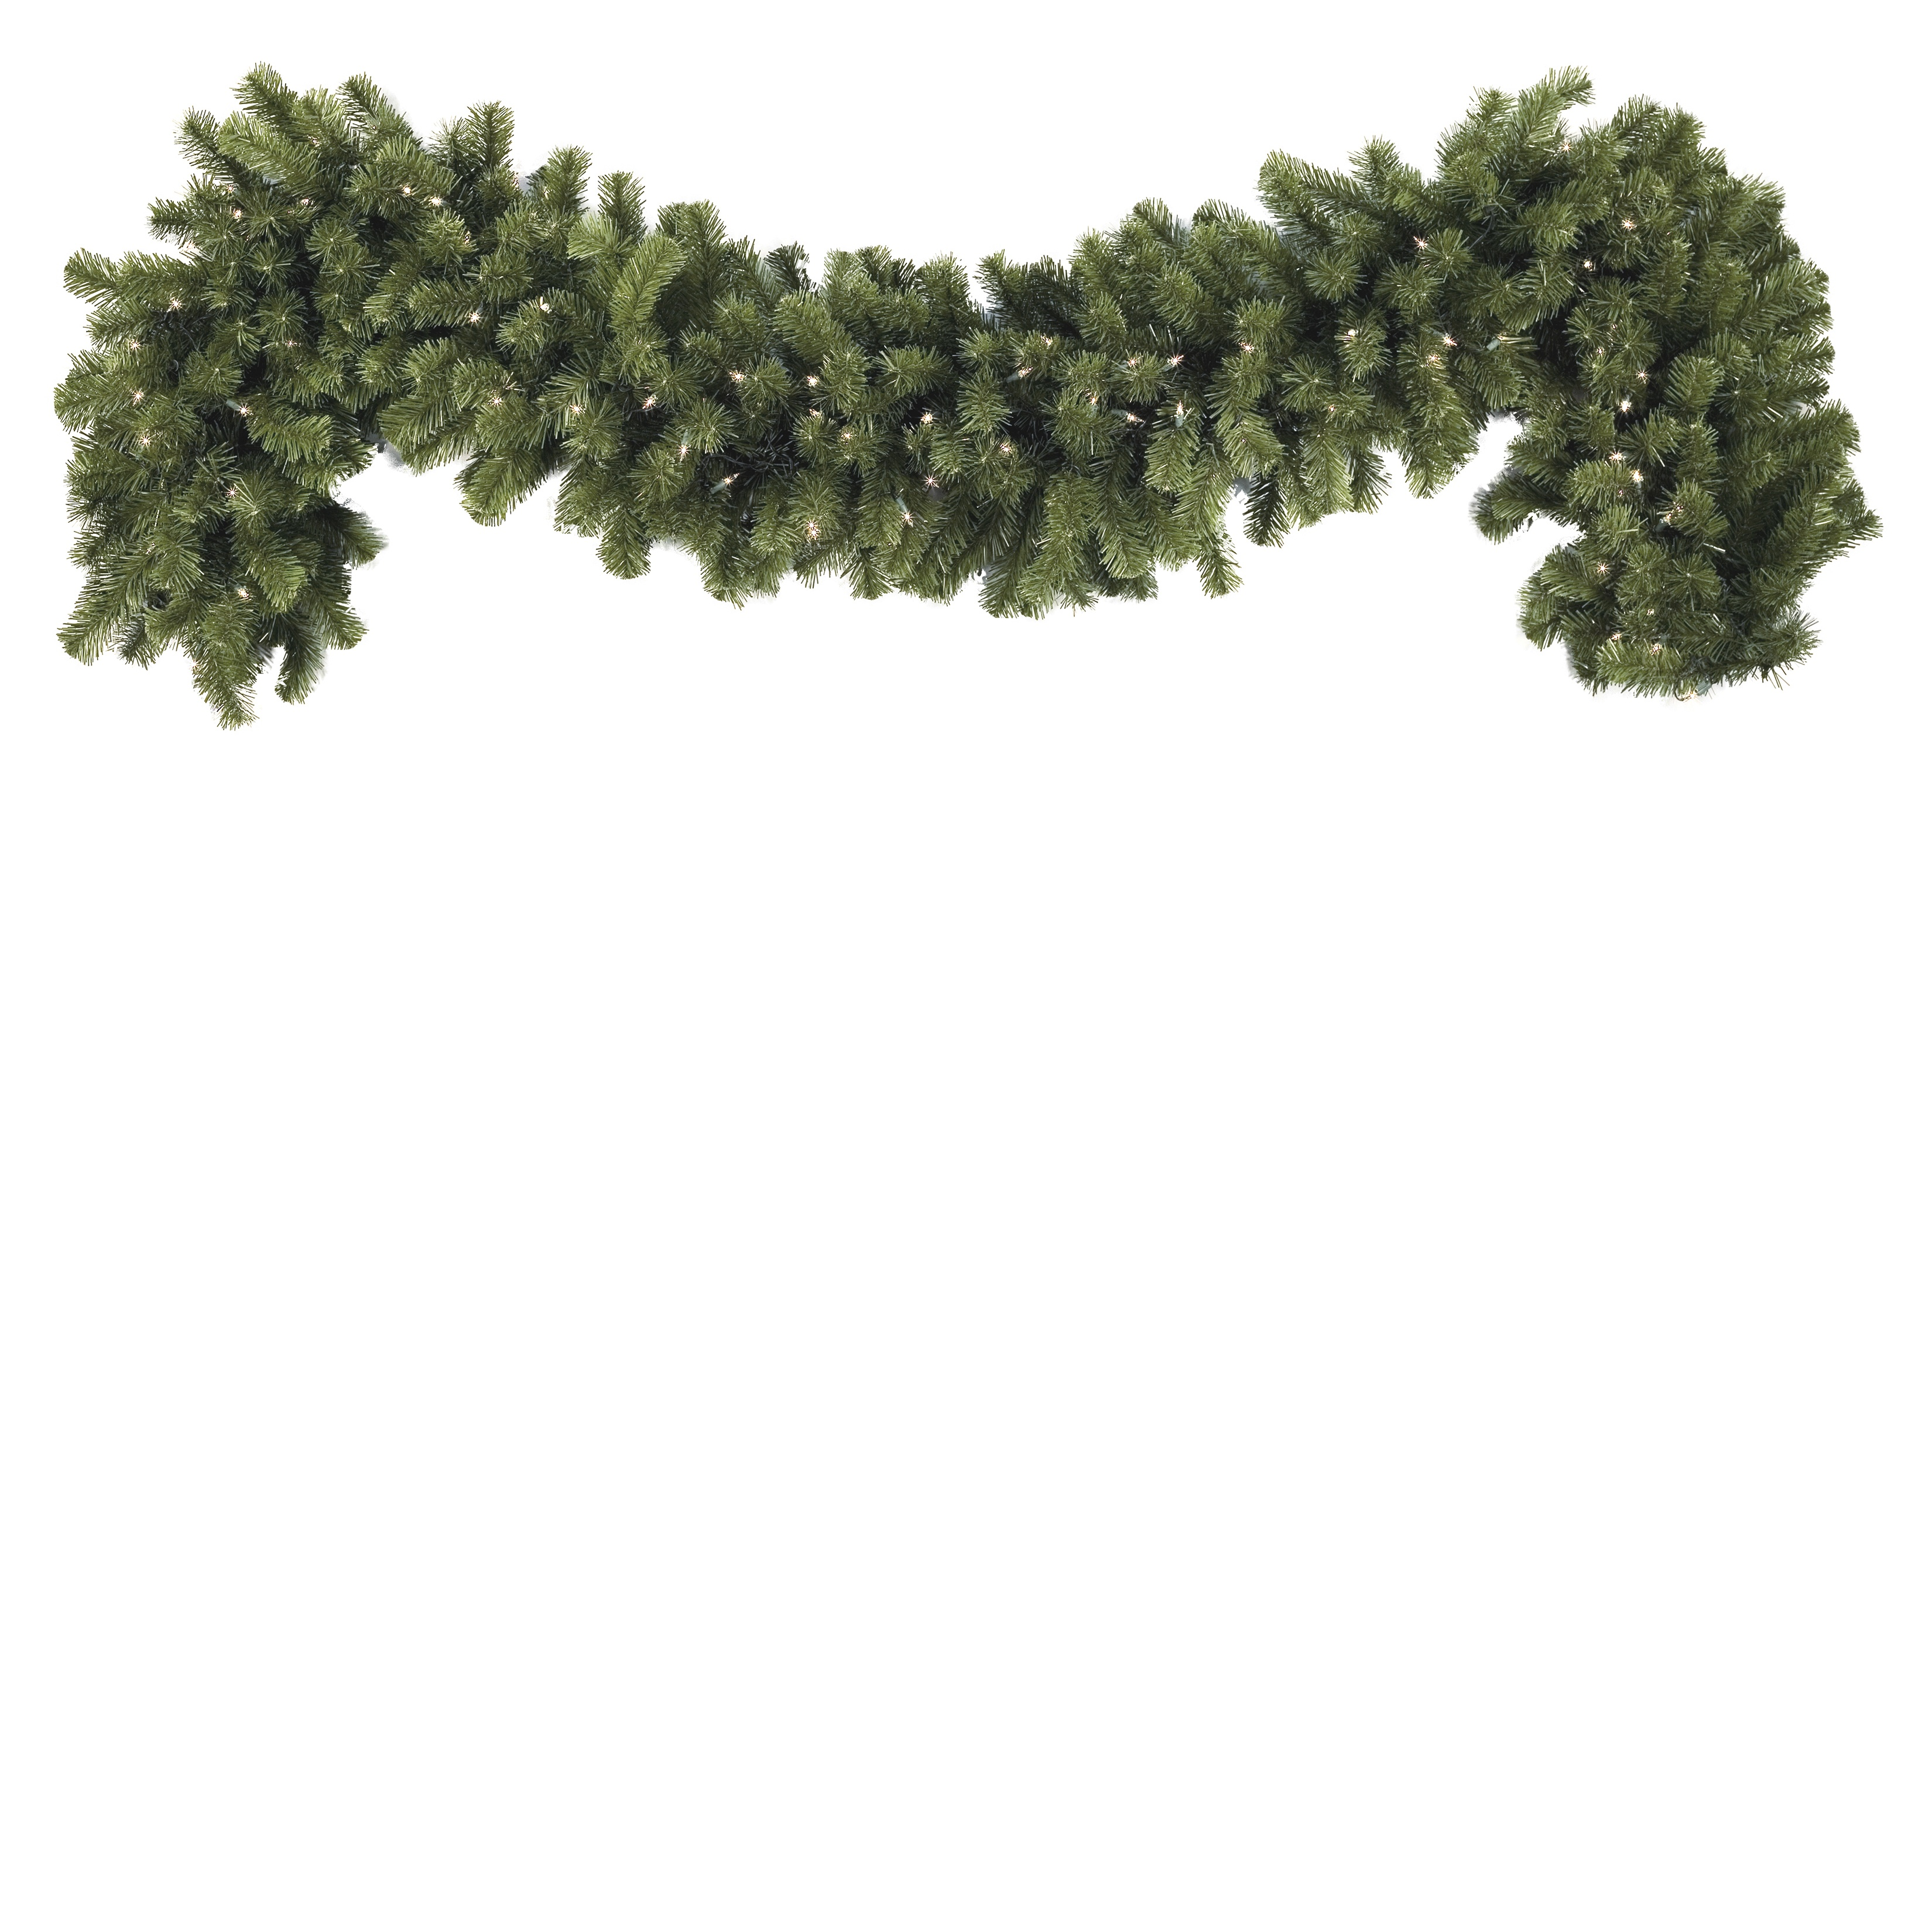 Lighted Christmas Garland - Sequoia Fir Prelit Commercial ...